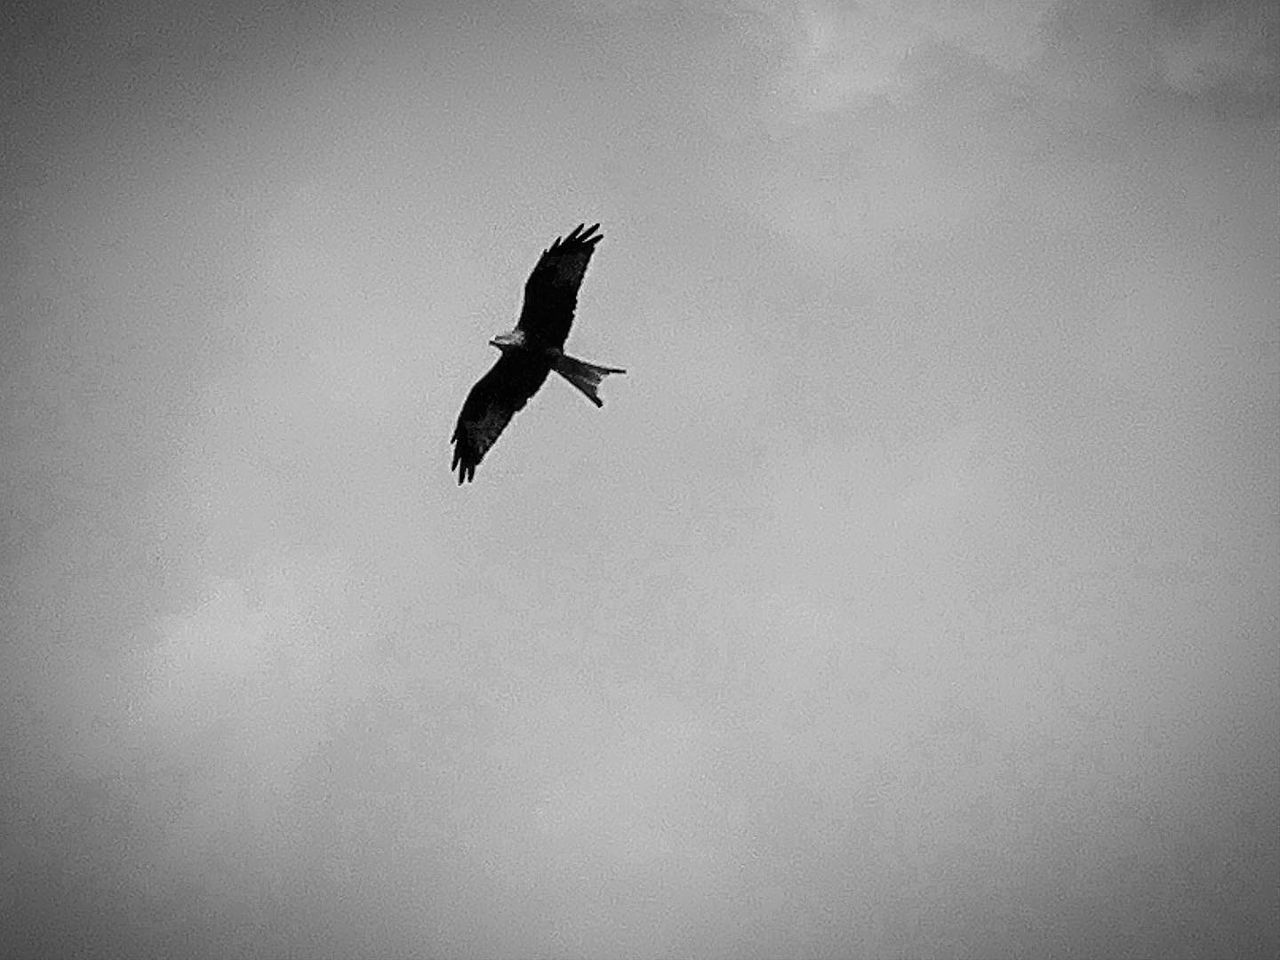 vertebrate, flying, animal themes, animals in the wild, bird, animal wildlife, animal, one animal, spread wings, low angle view, mid-air, sky, no people, nature, day, outdoors, motion, silhouette, cloud - sky, full length